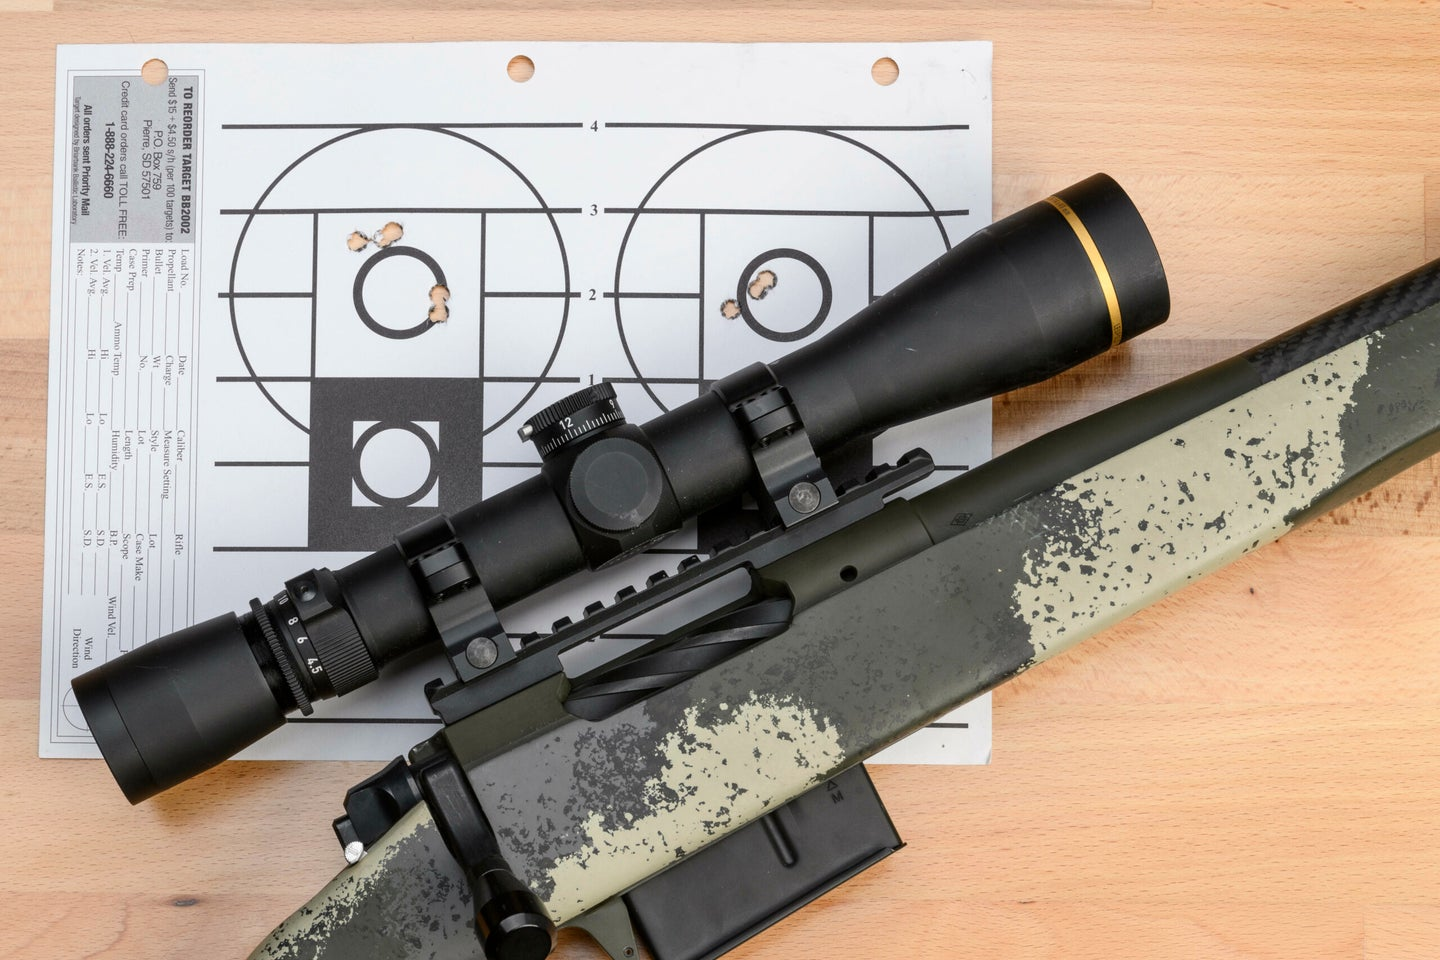 A camo-stocked bolt-action rifle, topped with a black scope, lying on top of a paper target with two zeroing groups.